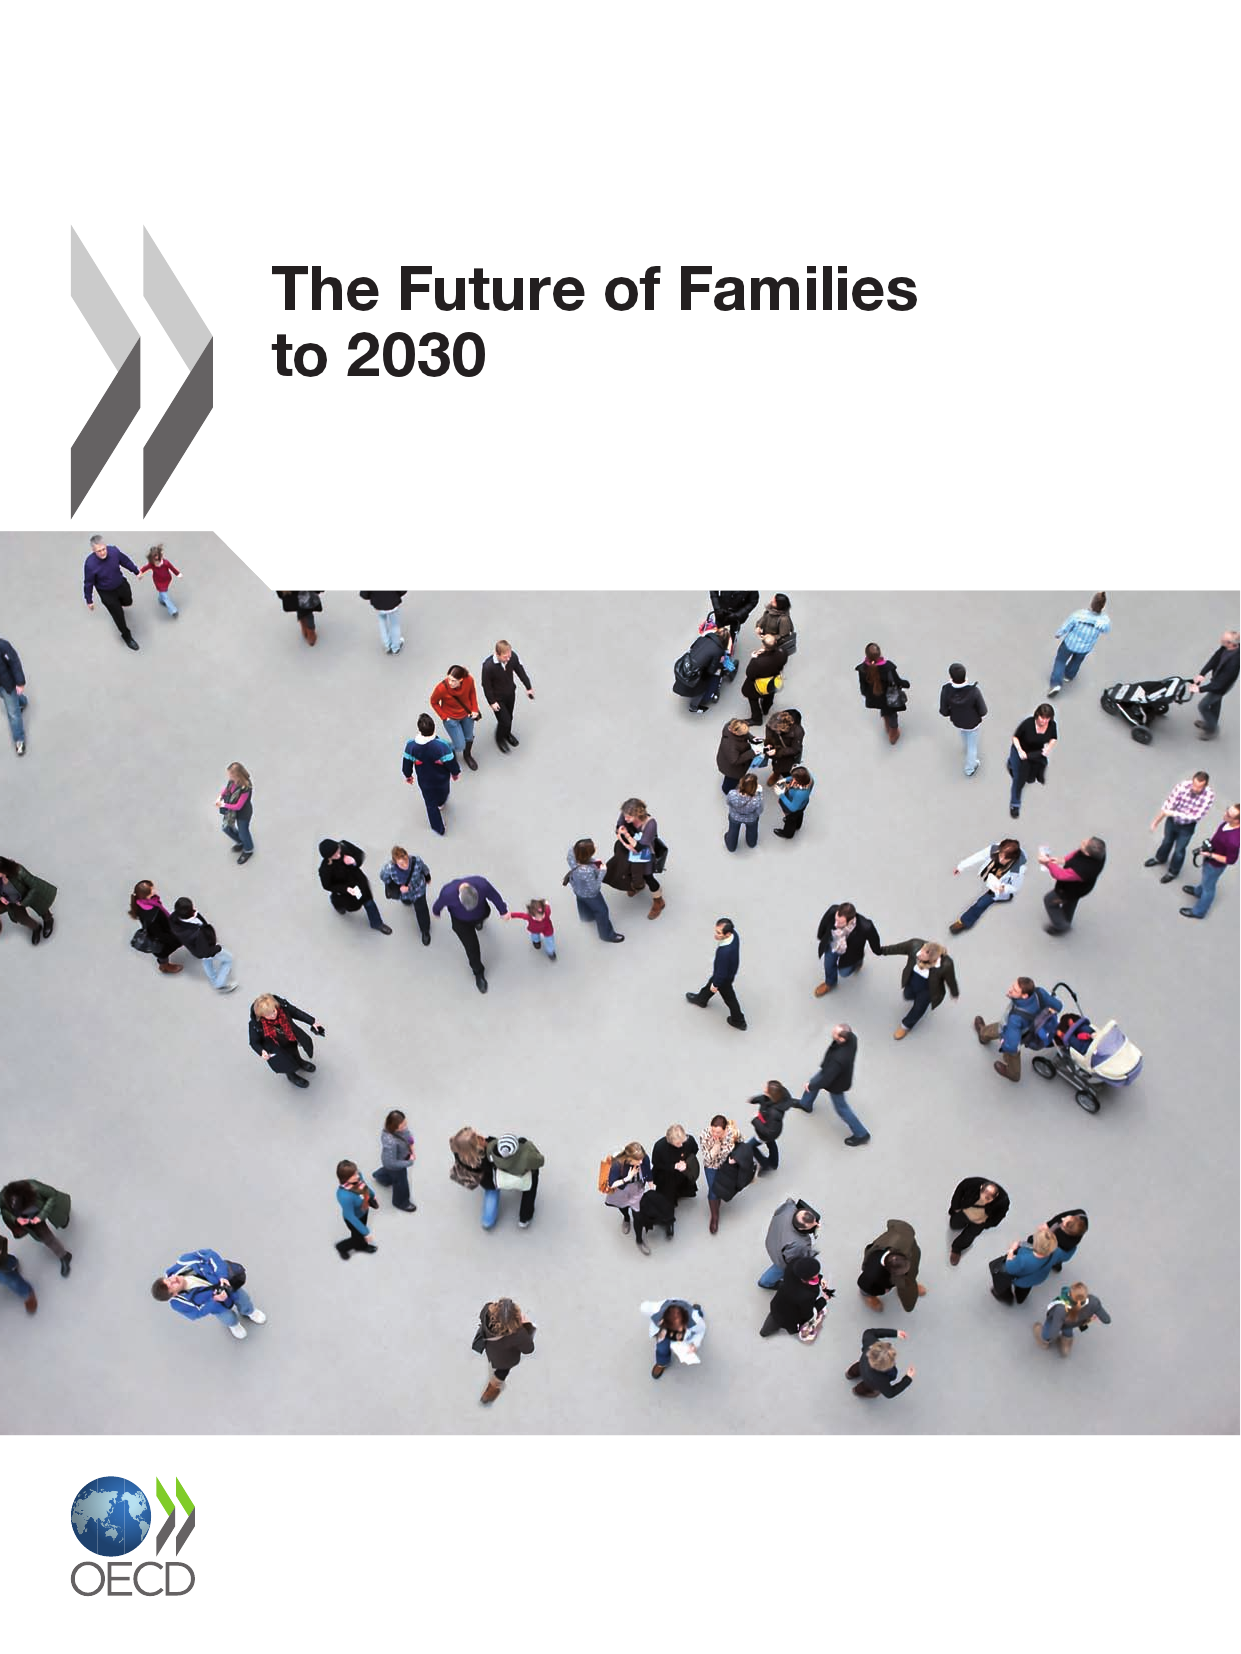 The Future of Families to 2030